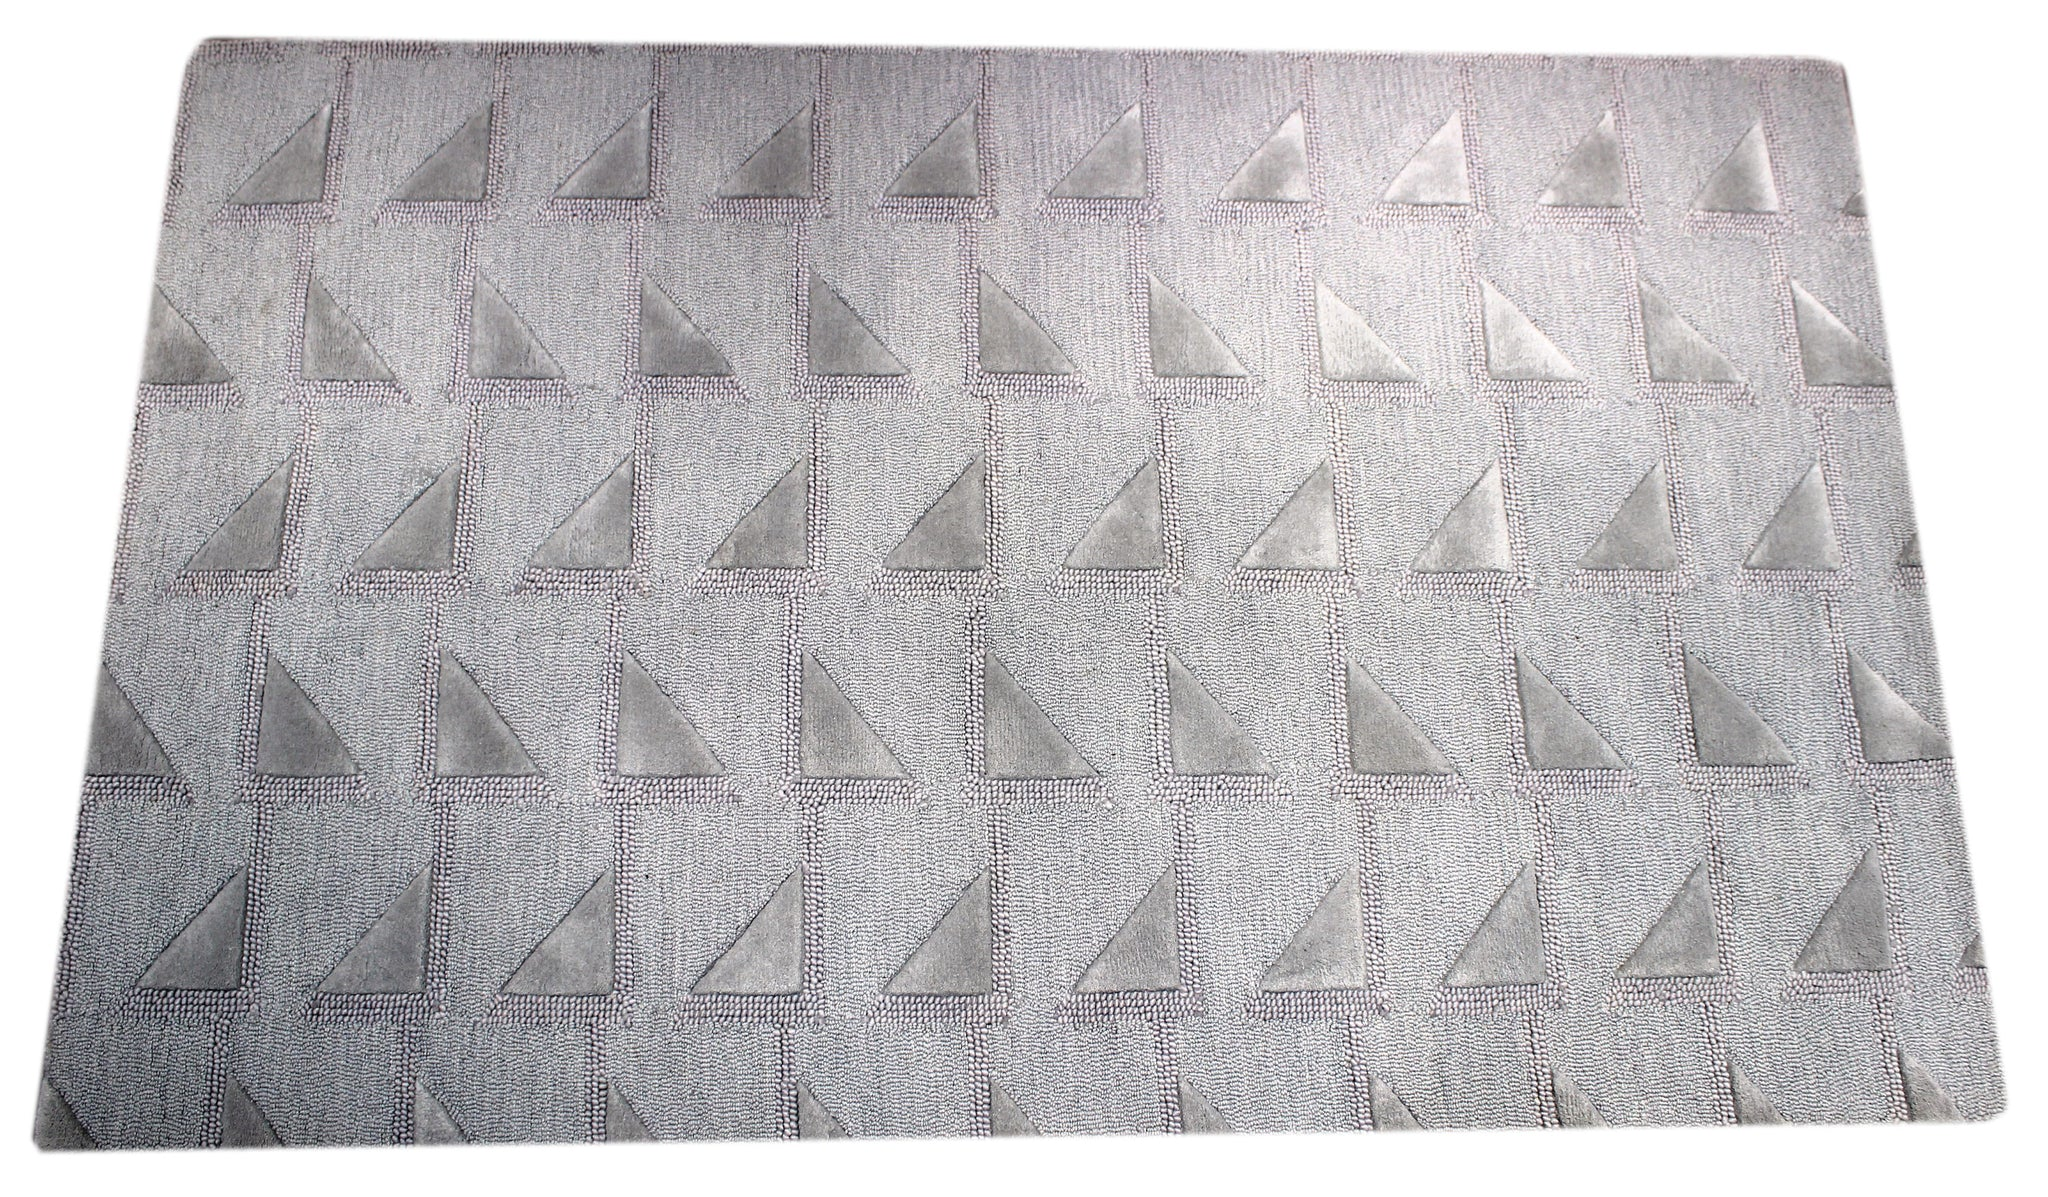 Silver Triangle handmade area rug by verve hand-made